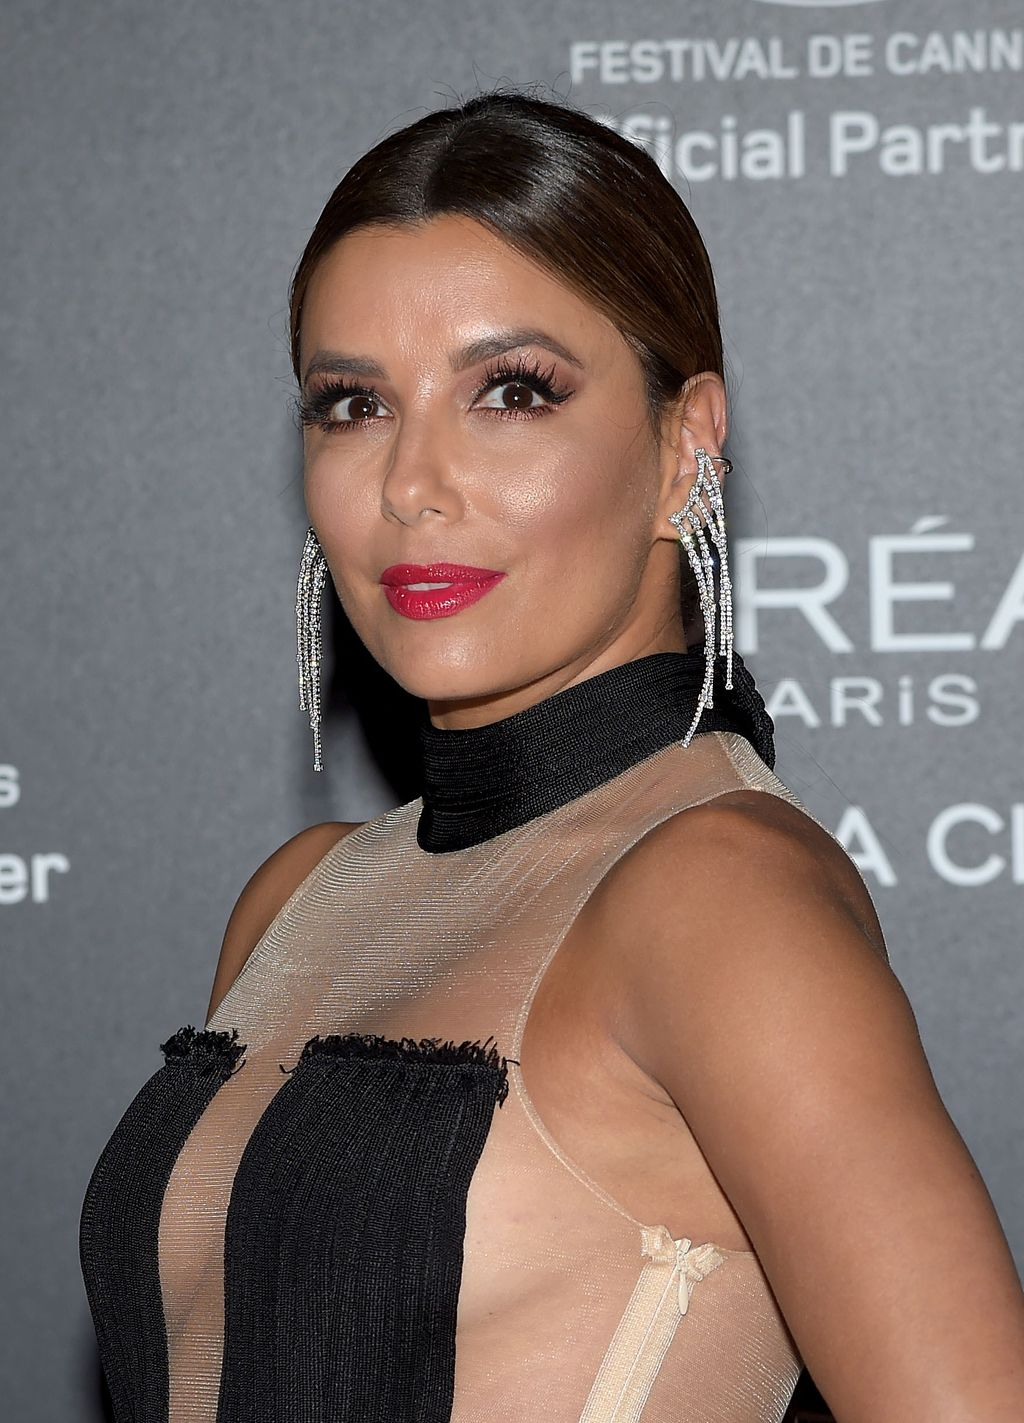 CANNES, FRANCE - MAY 24:  Eva Longoria attends the Gala 20th Birthday Of L'Oreal In Cannes during the 70th annual Cannes Film Festival at Martinez Hotel on May 24, 2017 in Cannes, France.  (Photo by Pascal Le Segretain/Getty Images)